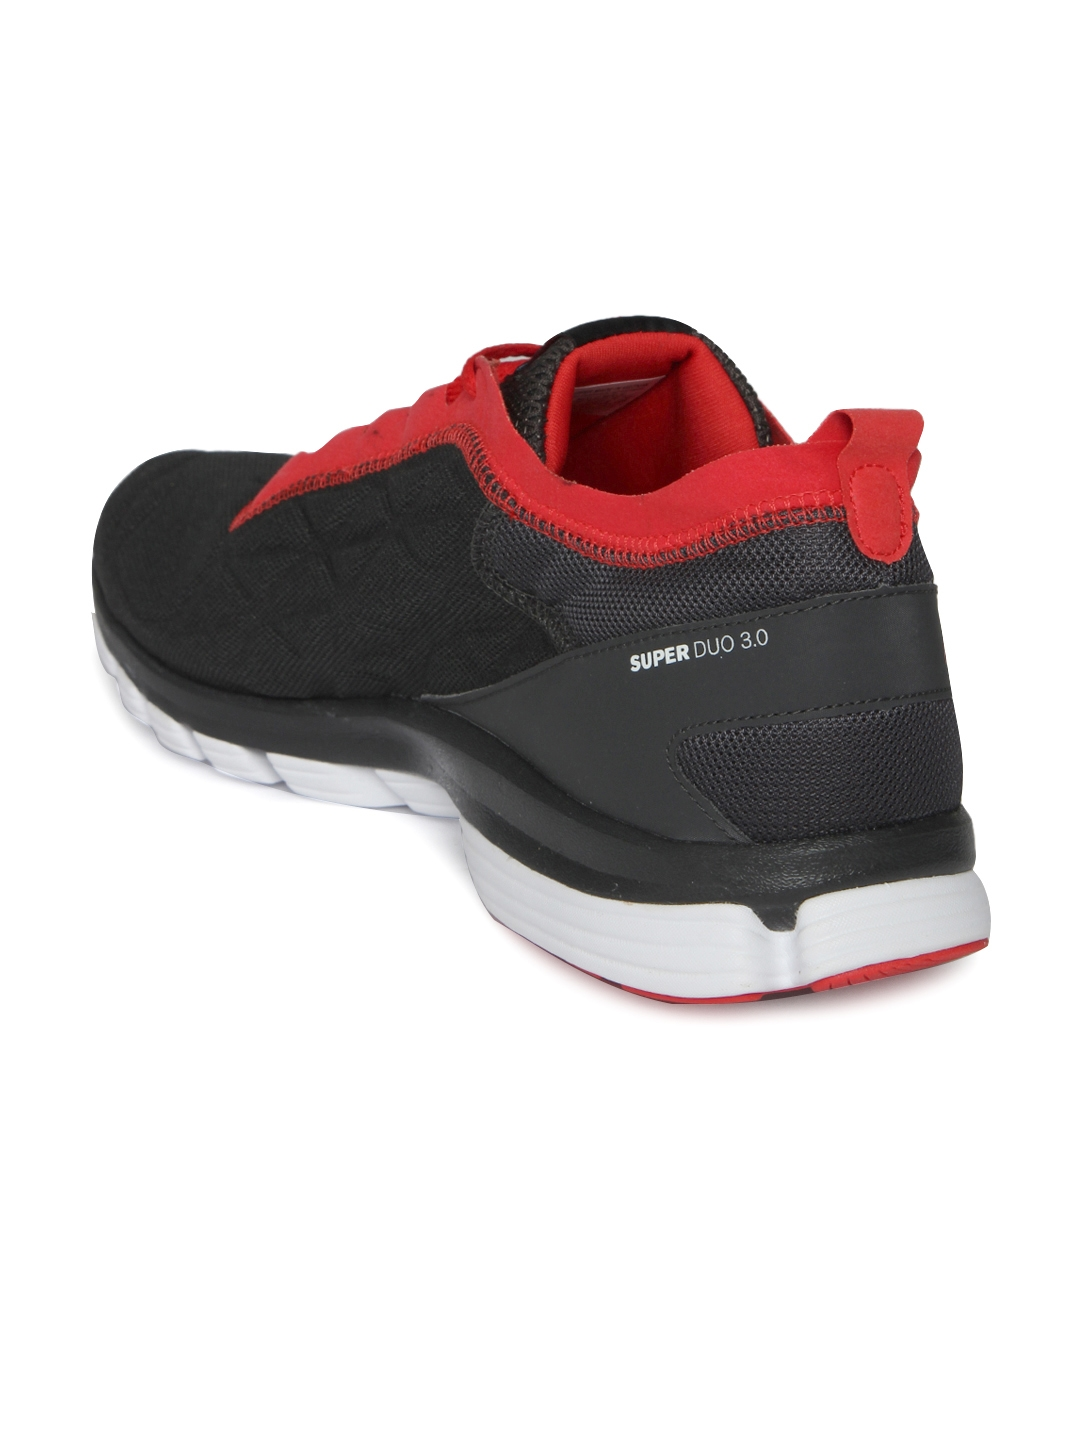 1475fcc2ac7 Buy Reebok Men Black Super Duo 3.0 Running Shoes - Sports Shoes for ...